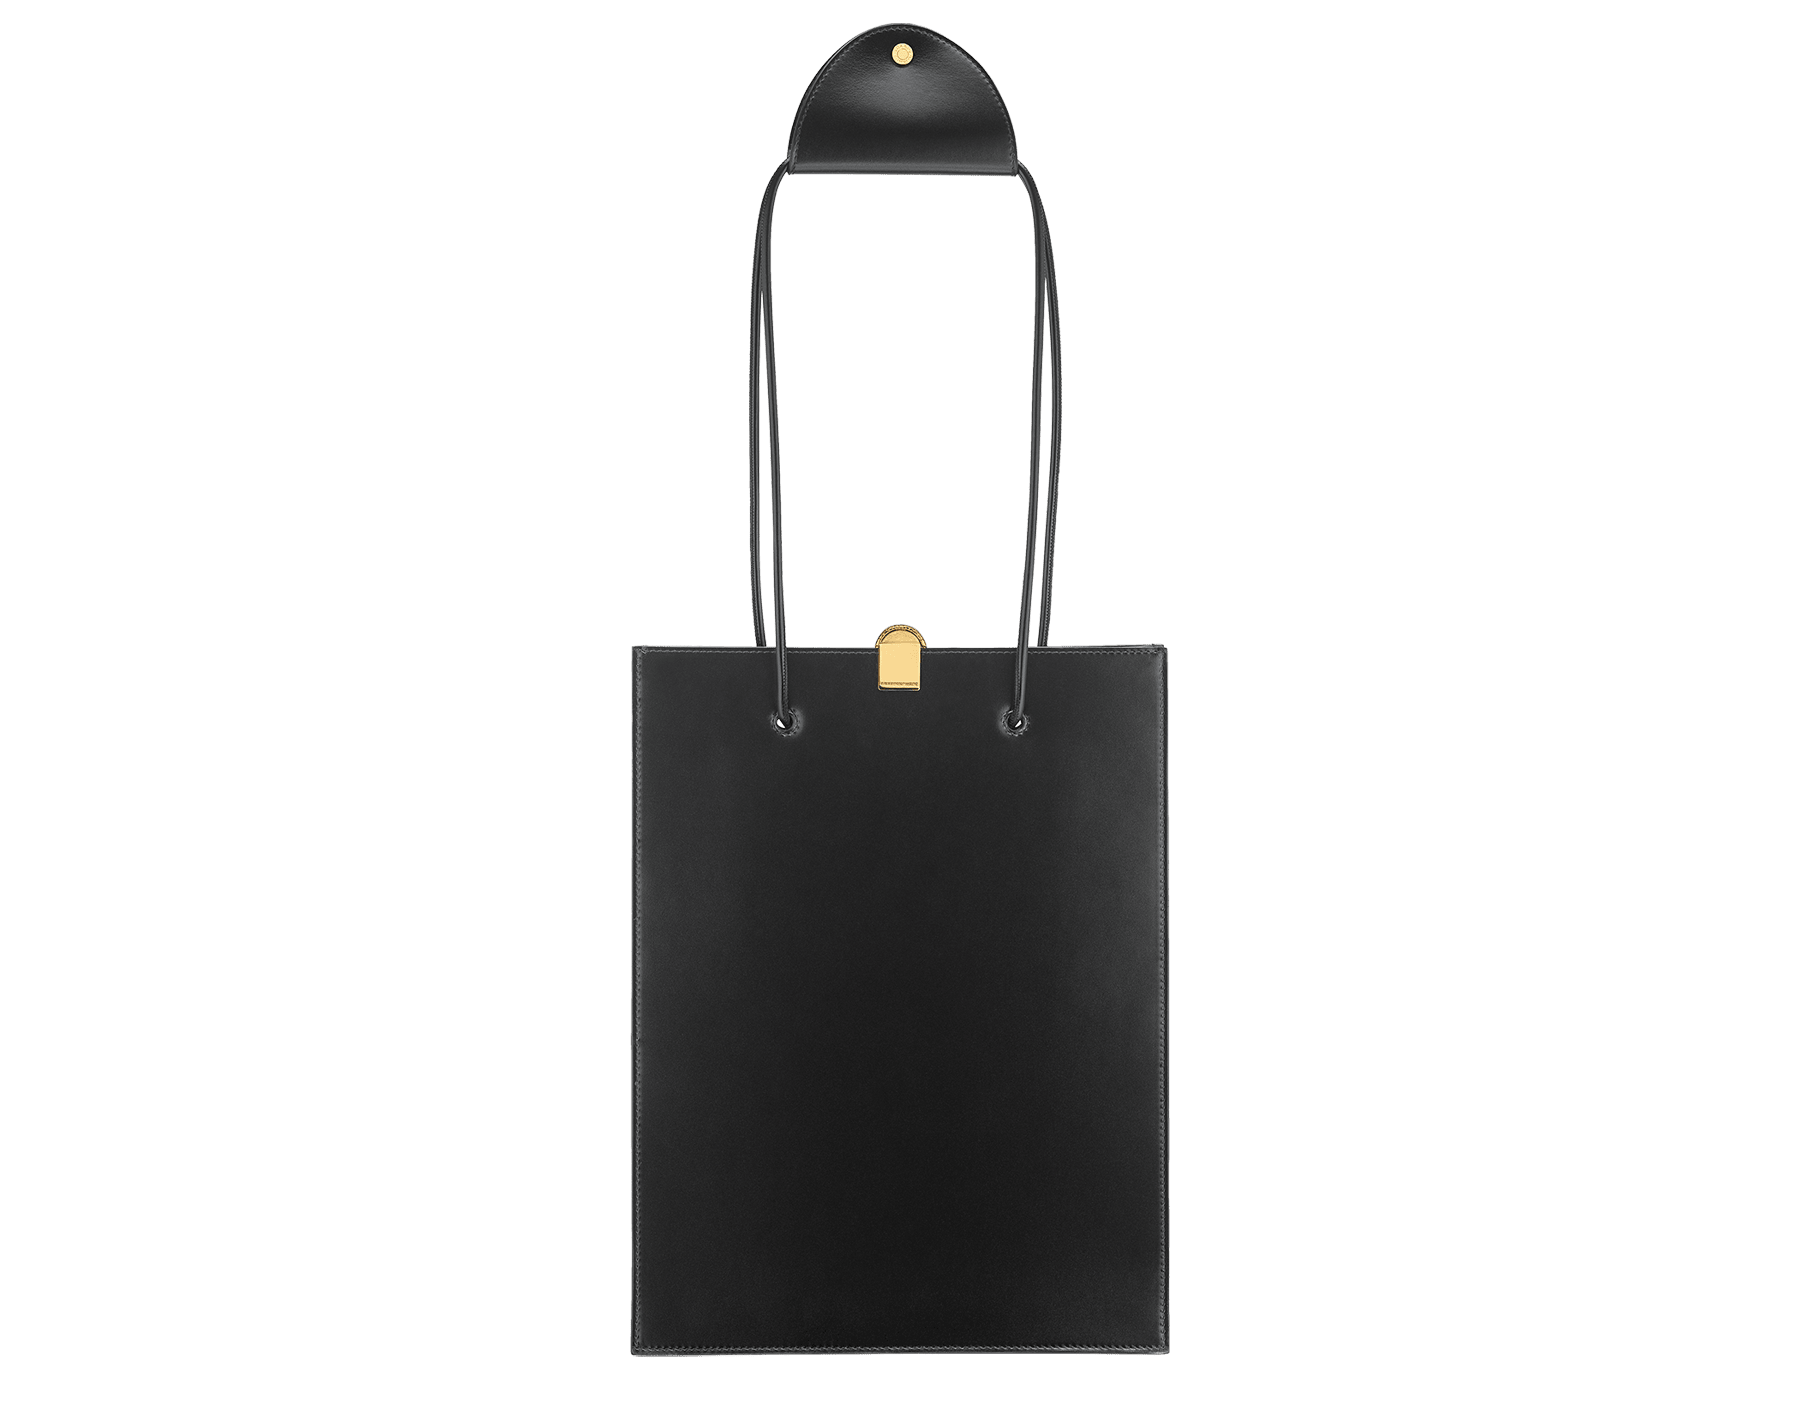 Alexander Wang x Bvlgari shopping tote bag in smooth black calf leather. New Serpenti head closure in antique gold plated brass with tempting red enamel eyes. Limited edition. 288733 image 3